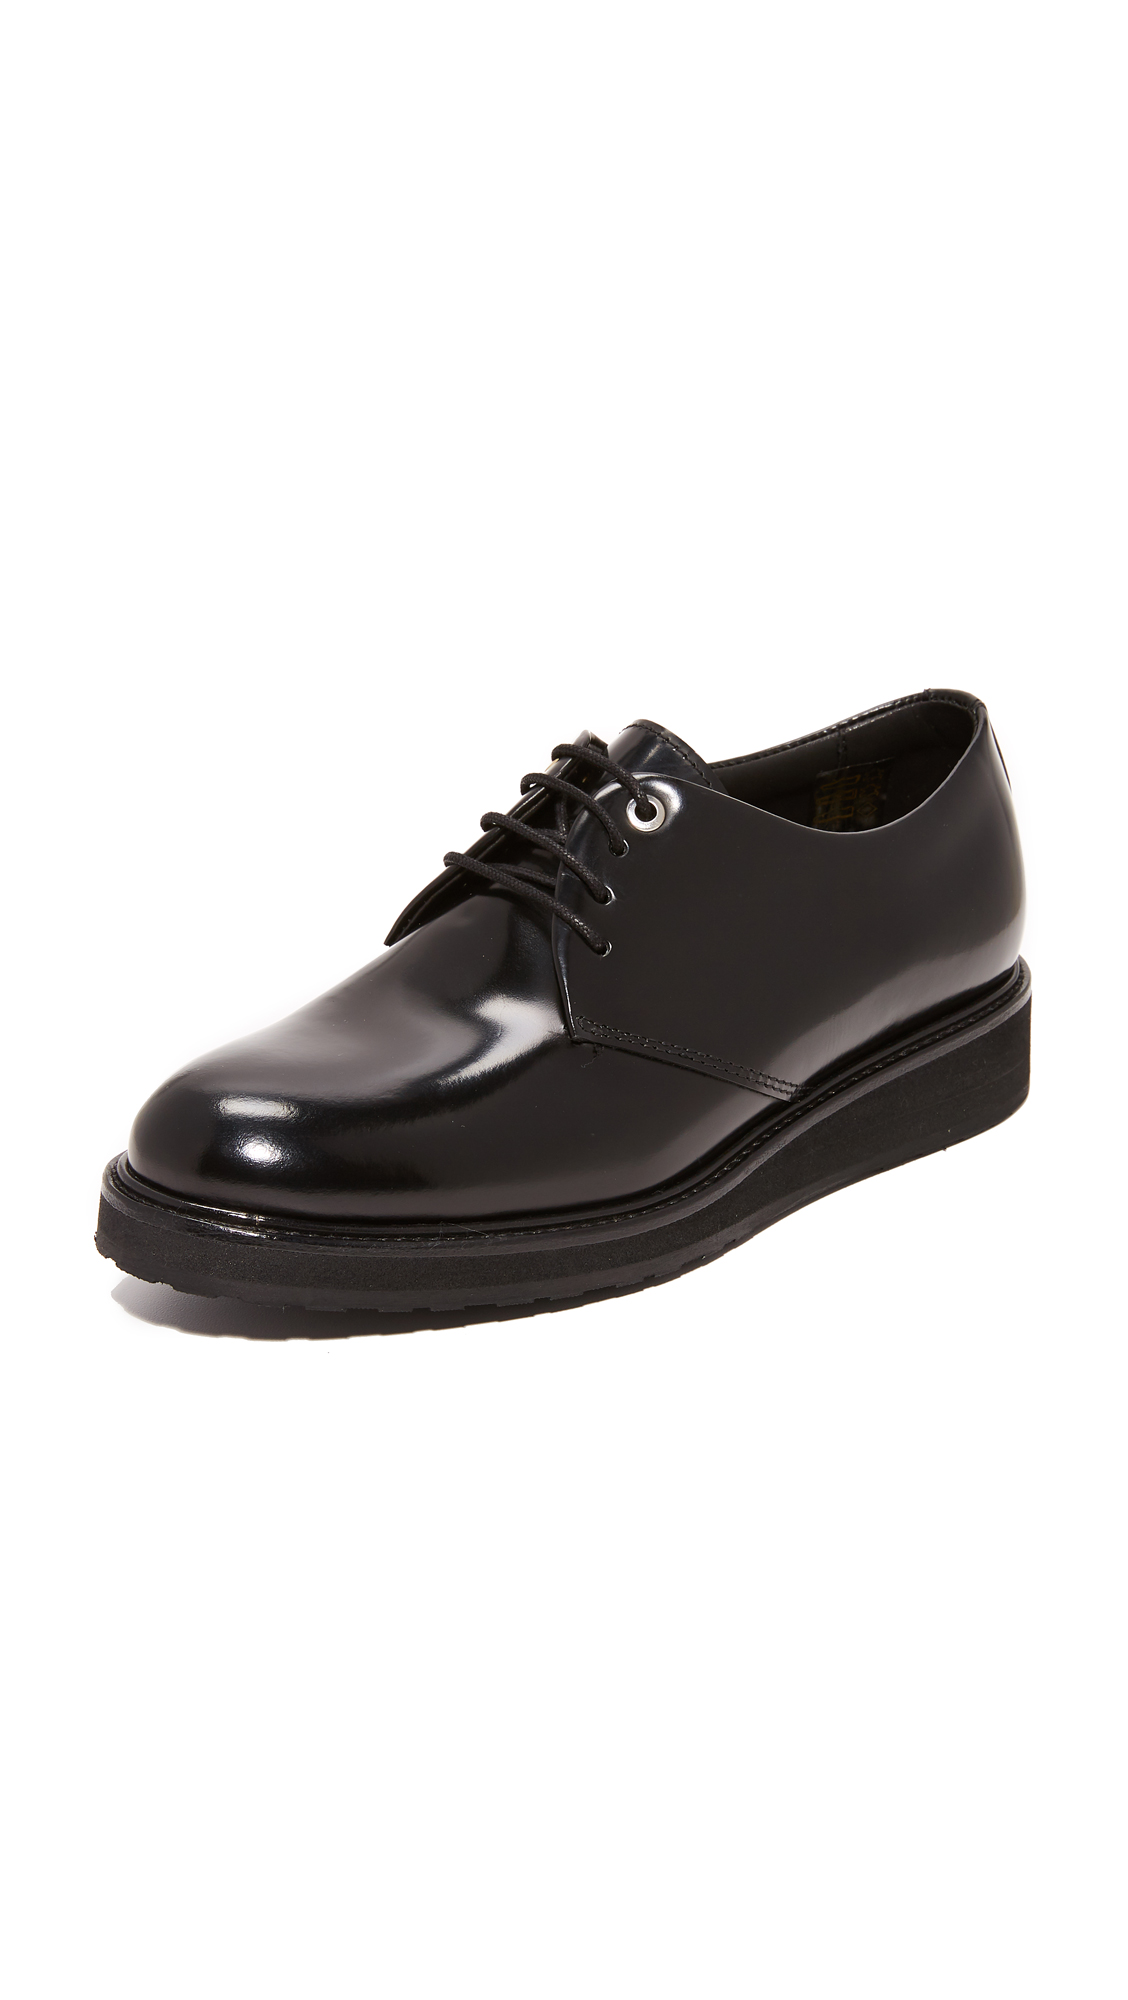 WANT LES ESSENTIELS Menara Wedge Derby Oxfords - Black/Black